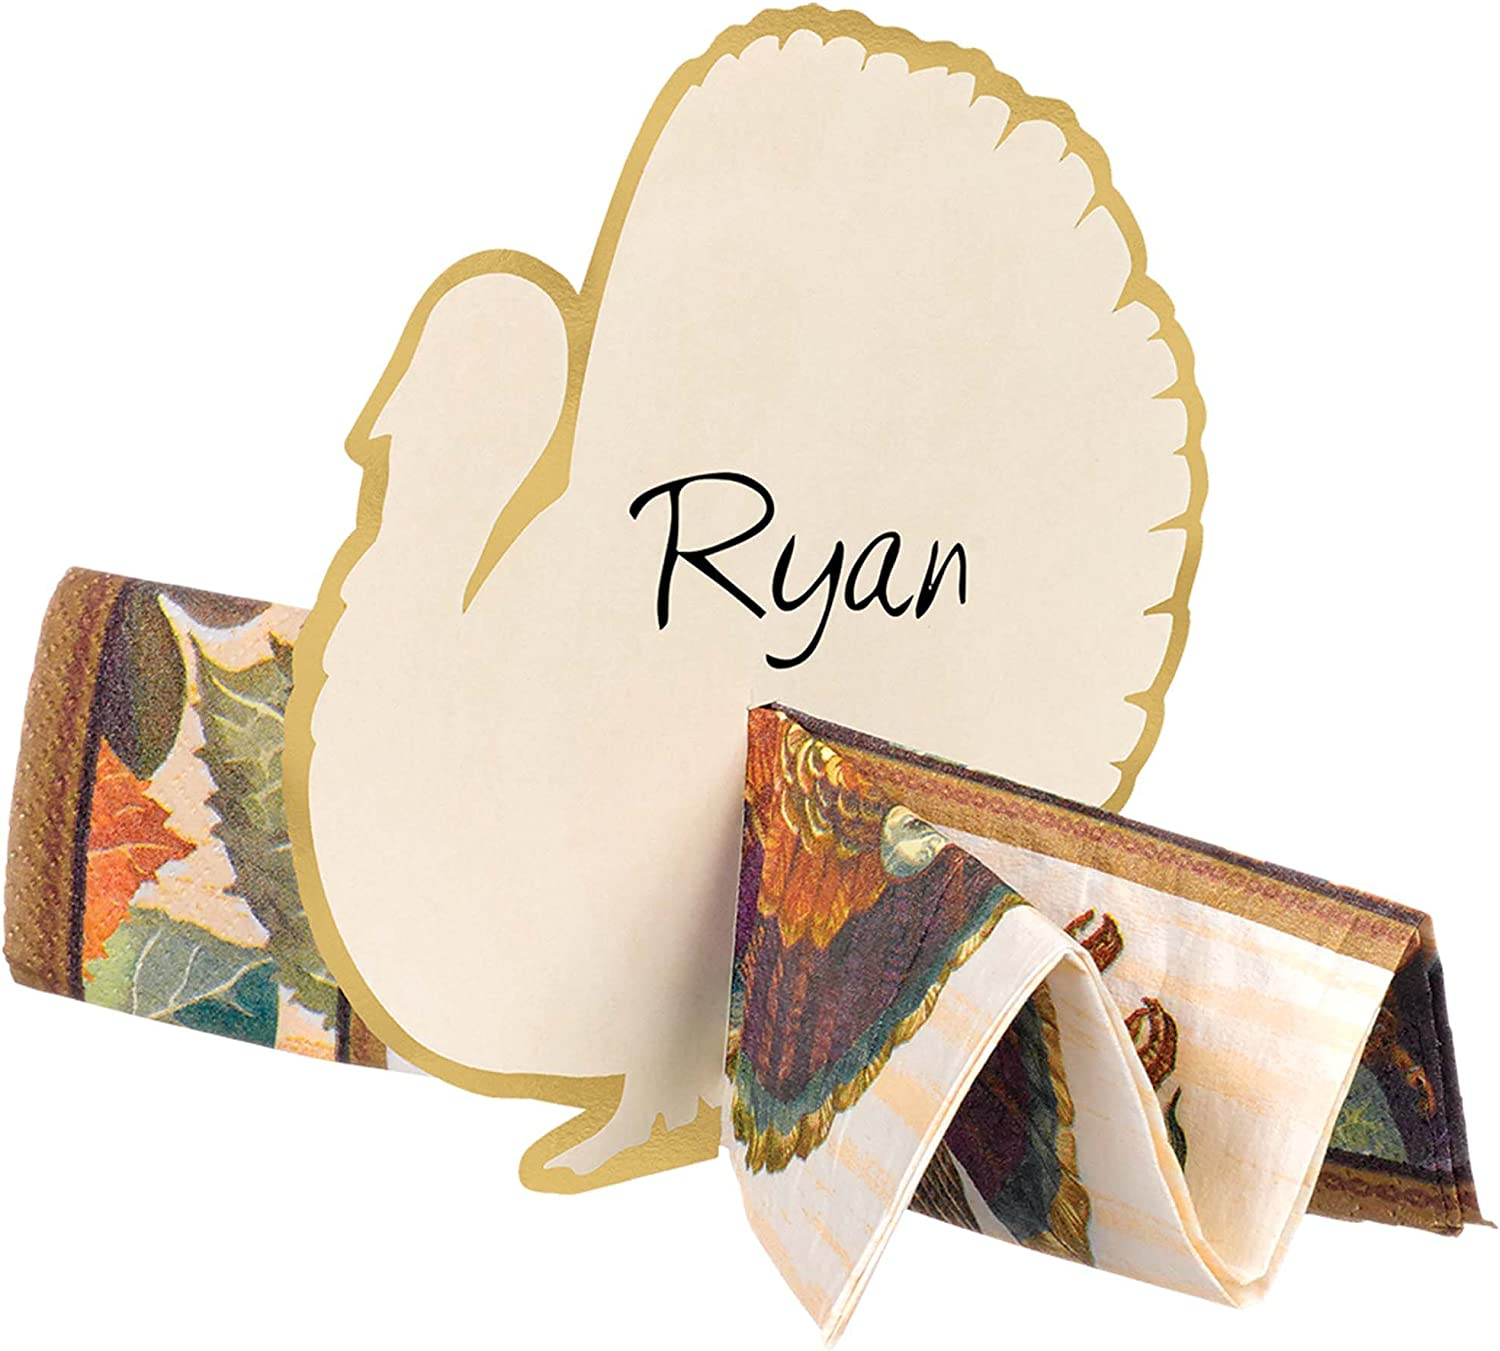 12 Ct. Thanksgiving Turkey Shaped Paper Place Card Napkin Holders 5.1 x 5.3